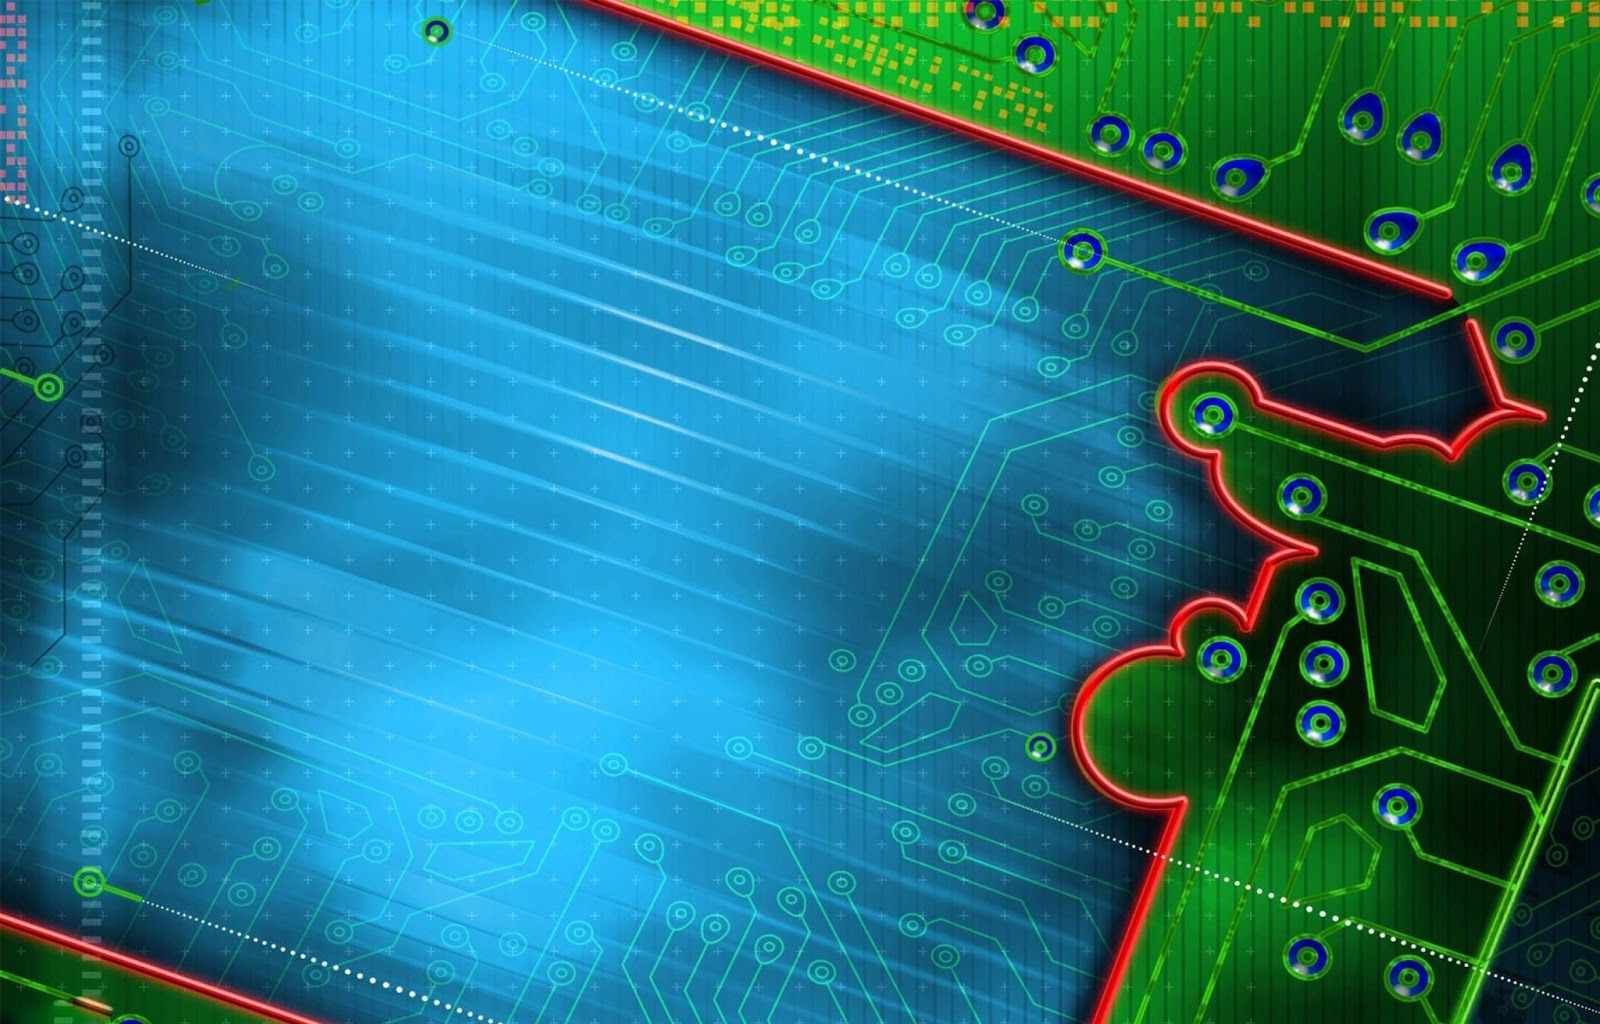 Abstract Circuit Board Background By Silvertiger: Abstract Circuit HD Wallpapers